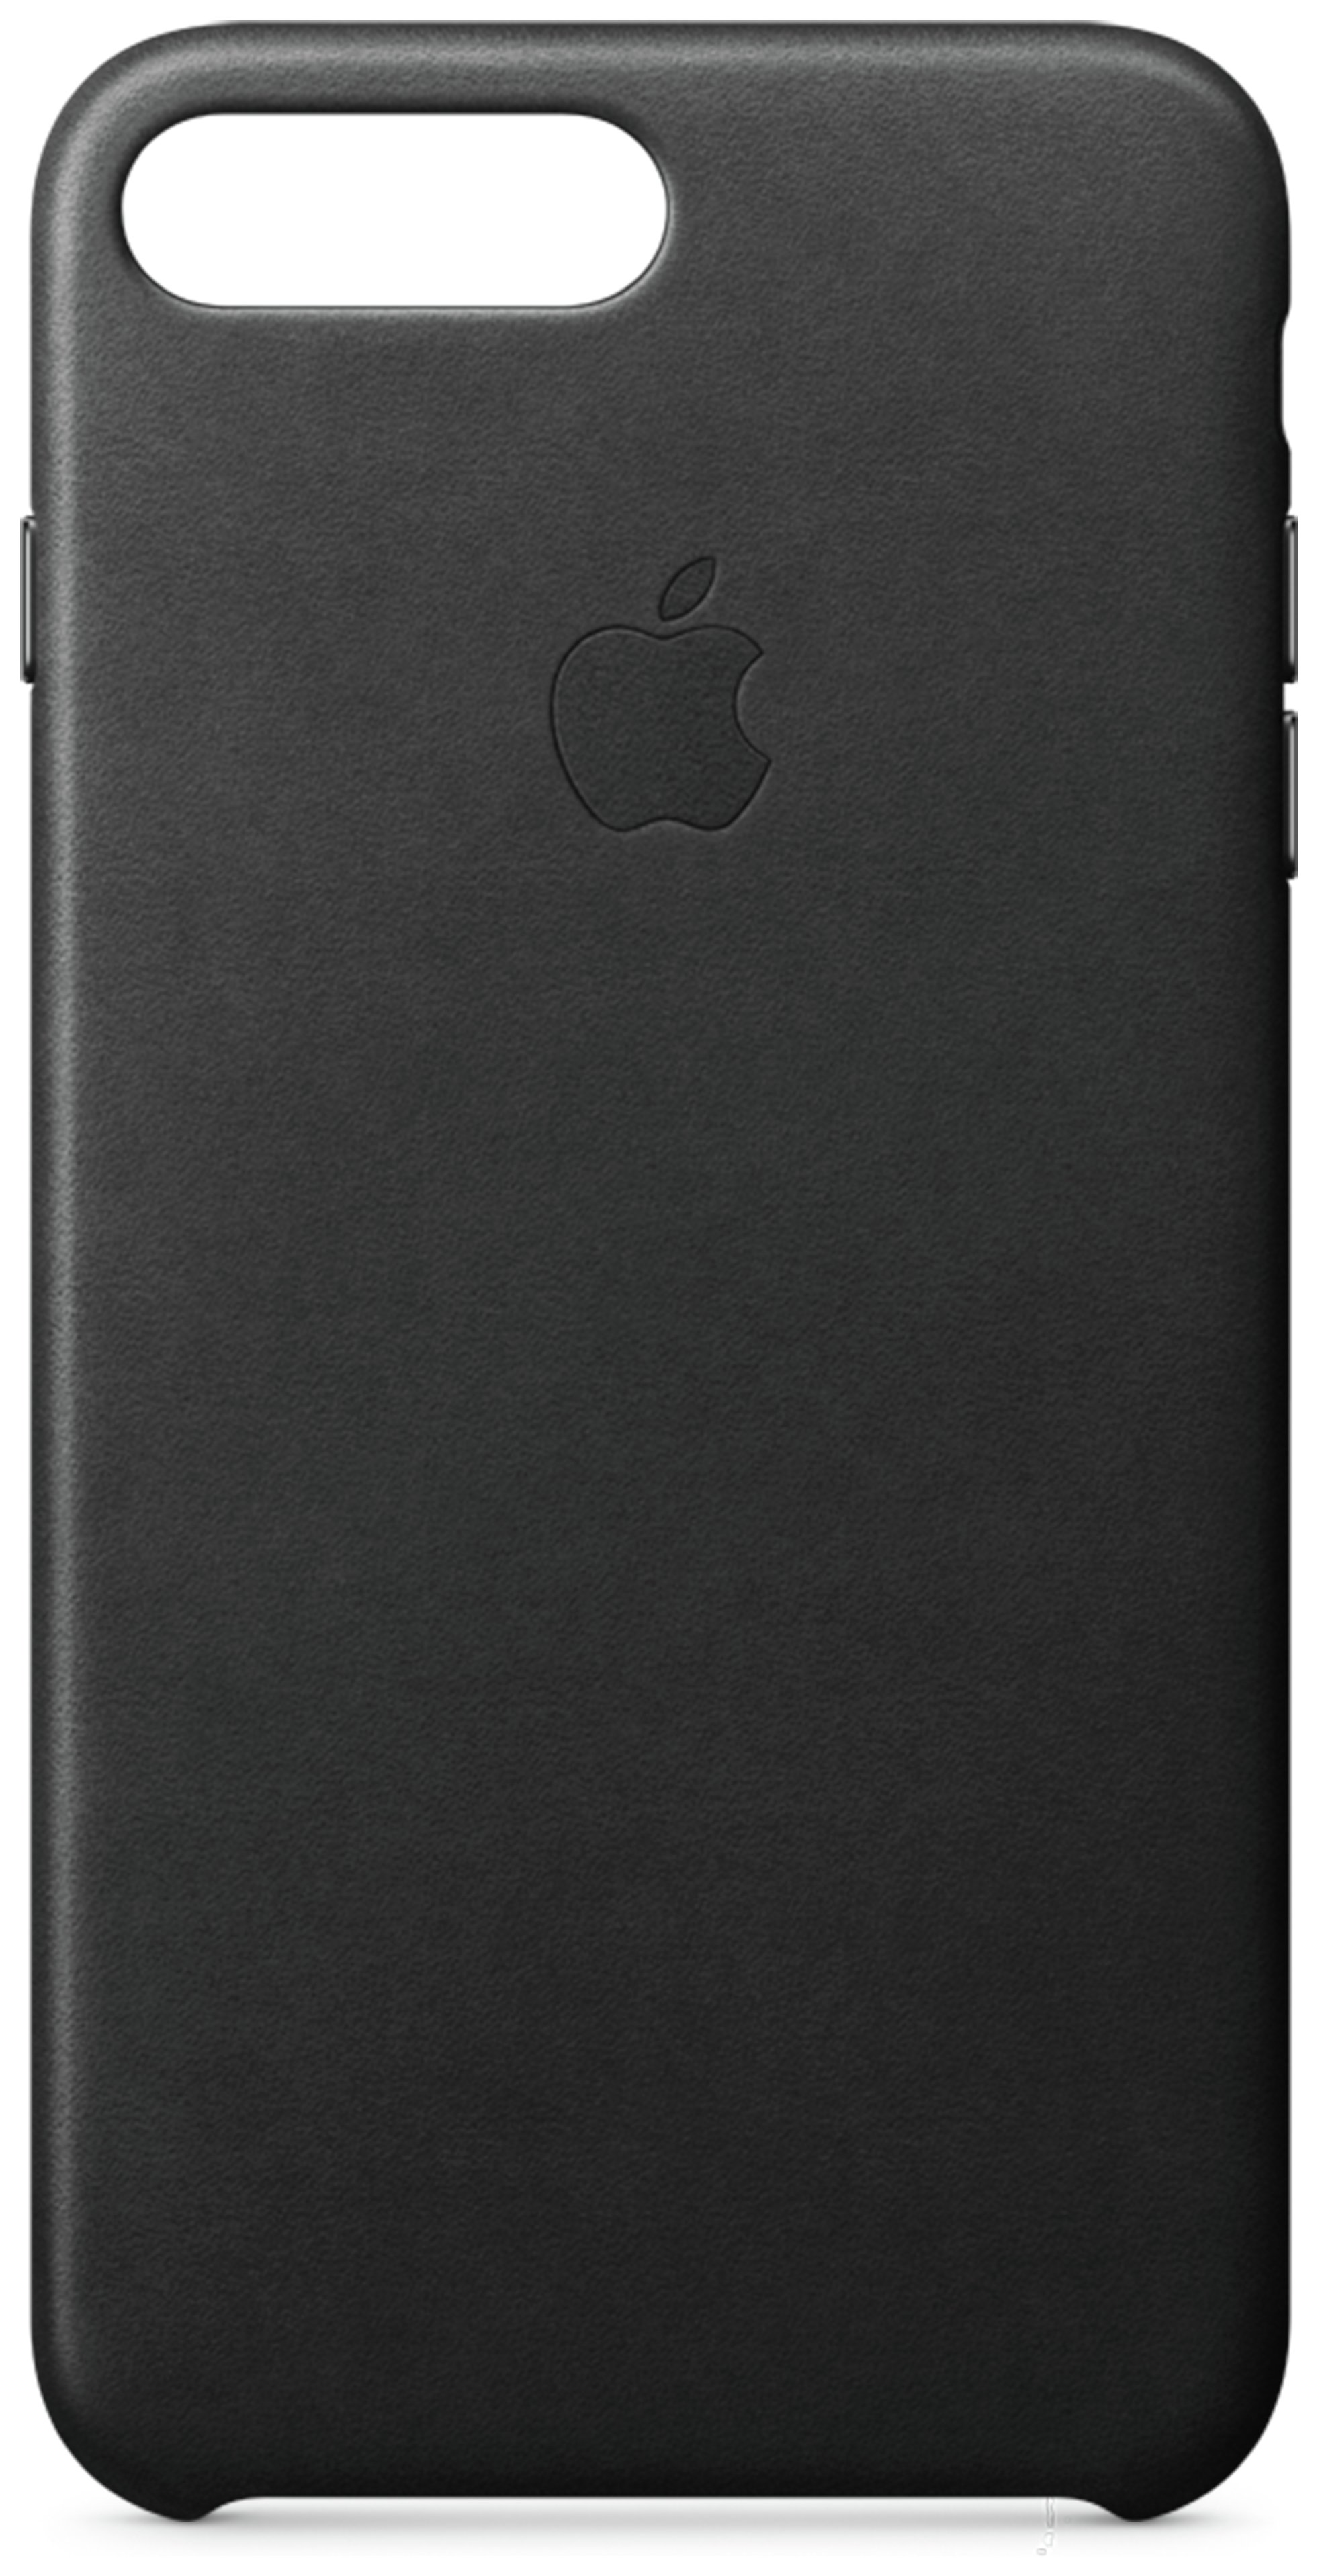 Apple iPhone 7 Plus Leather Case Black cheapest retail price